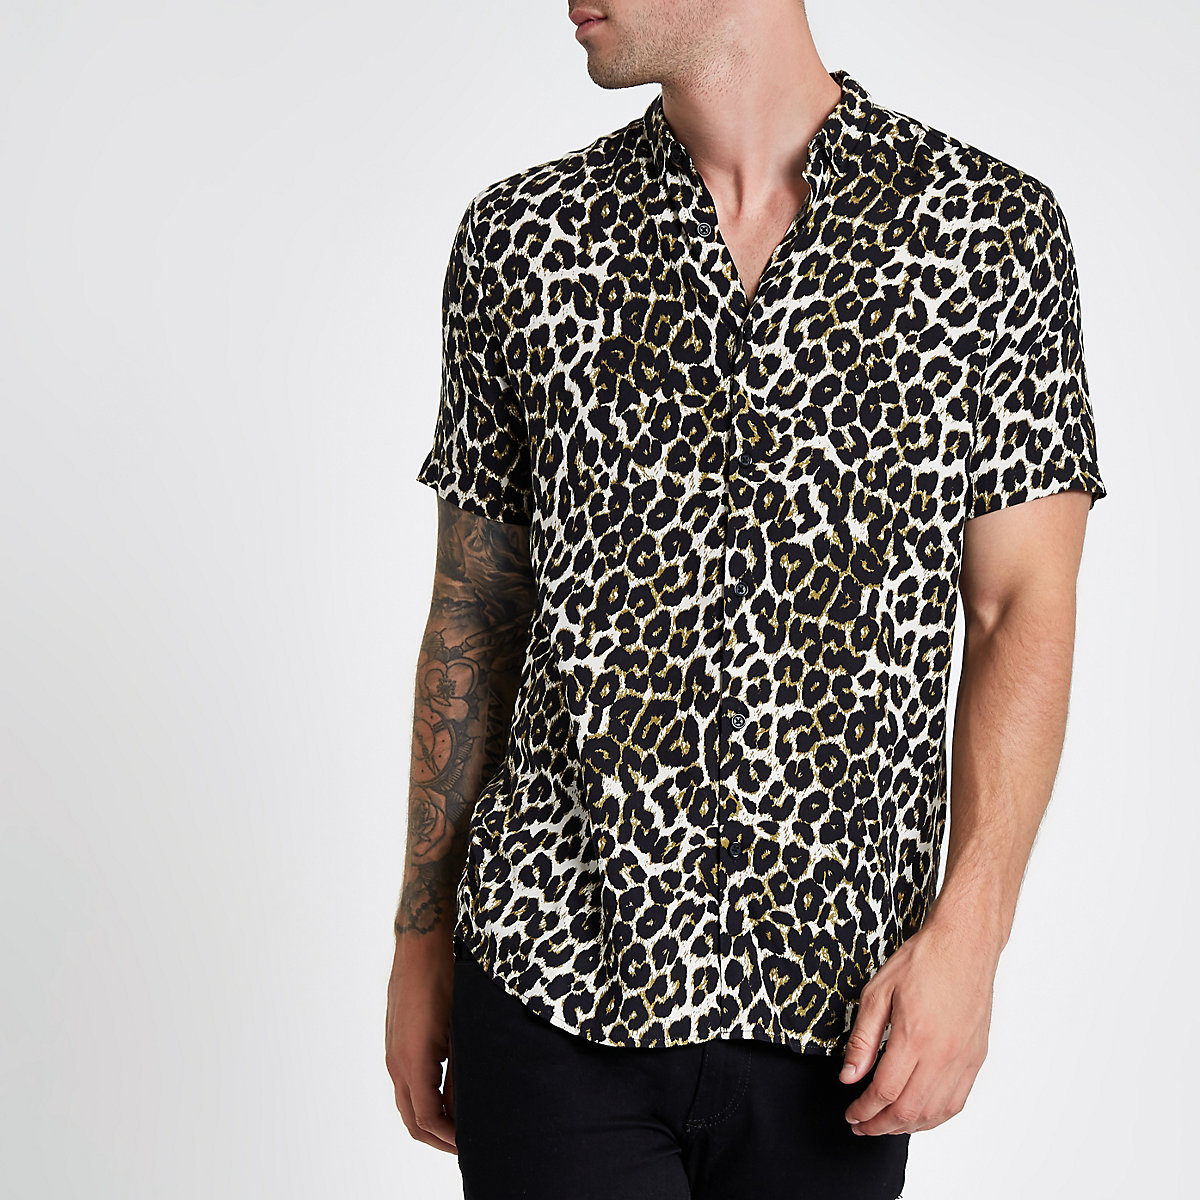 2019 Latest Shirt Designs For Men Leopard Print Short Sleeve With Factory Price